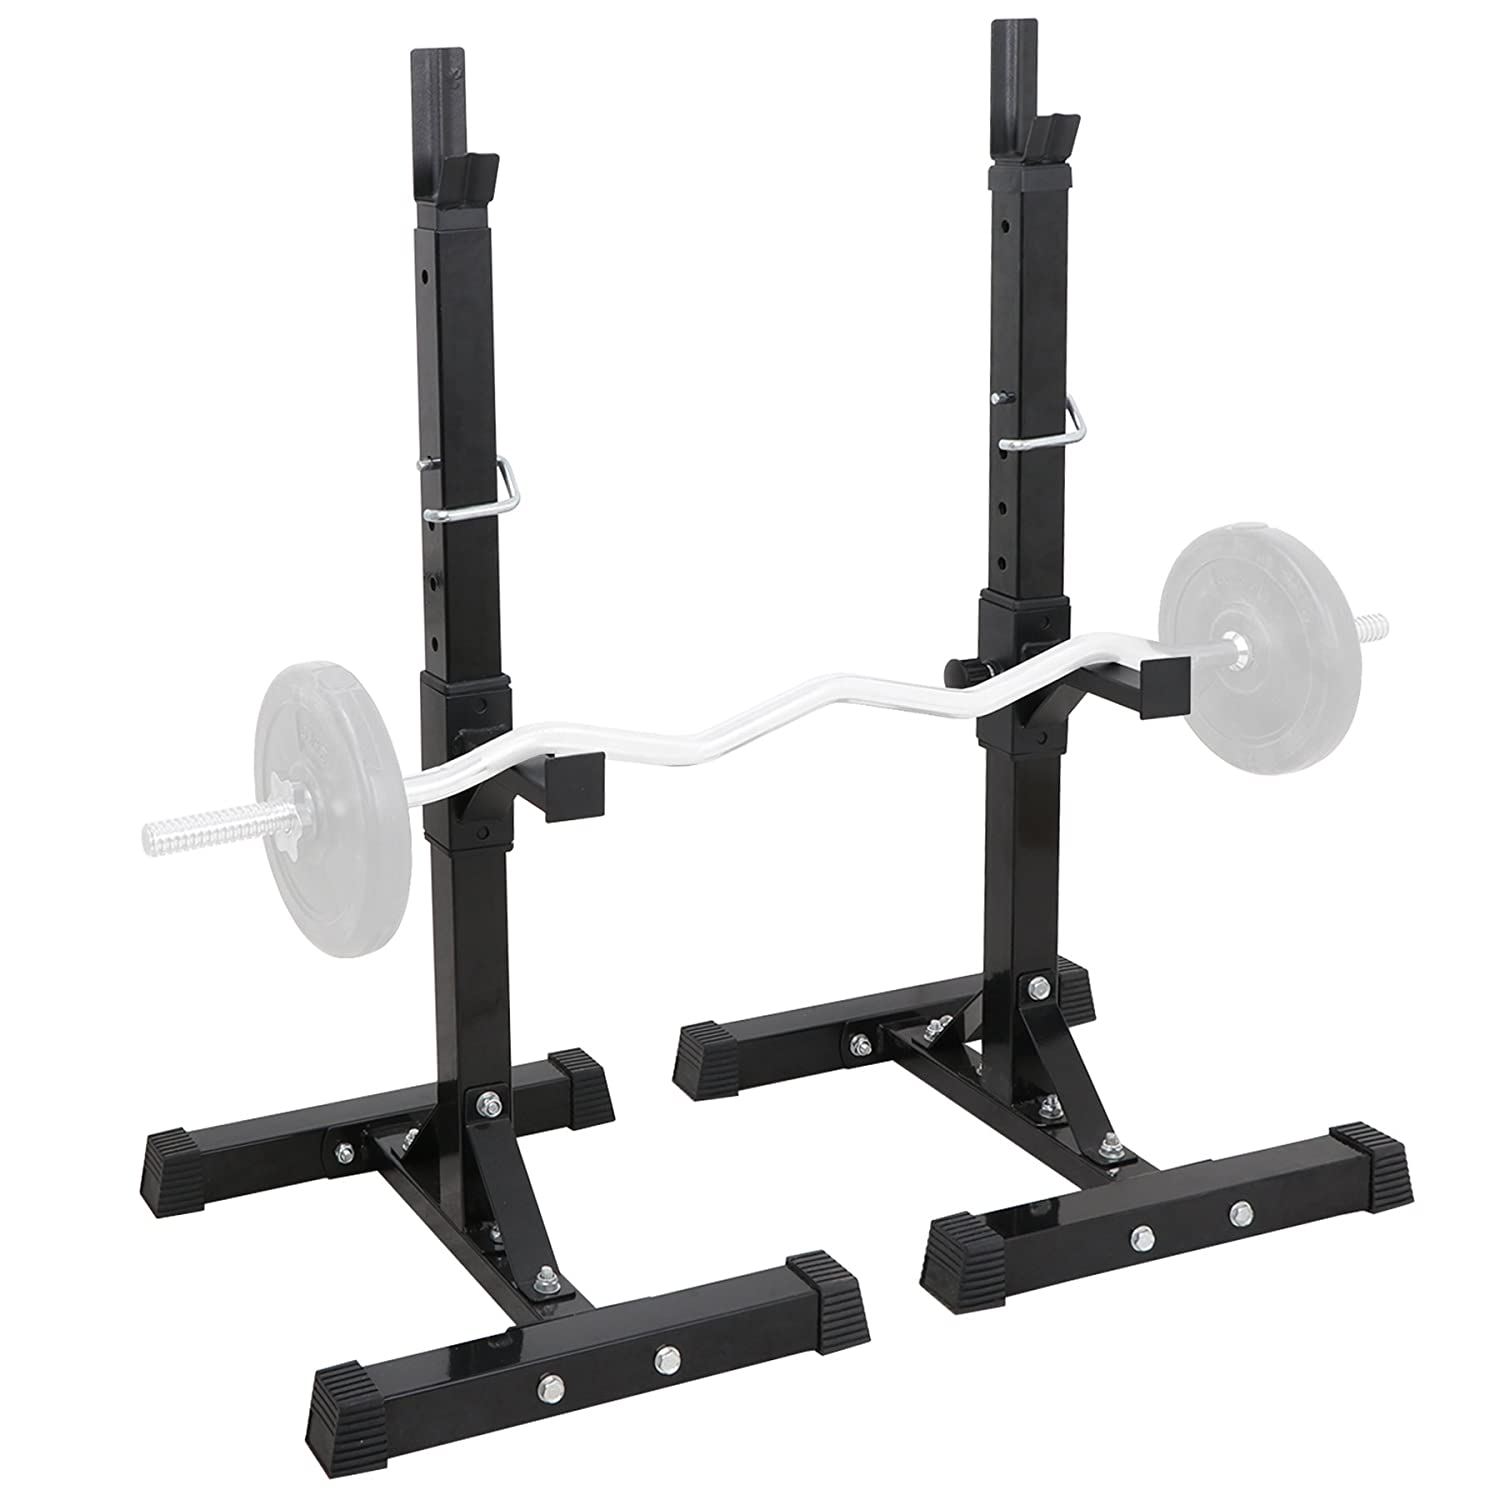 F2C Adjustable Squat Rack